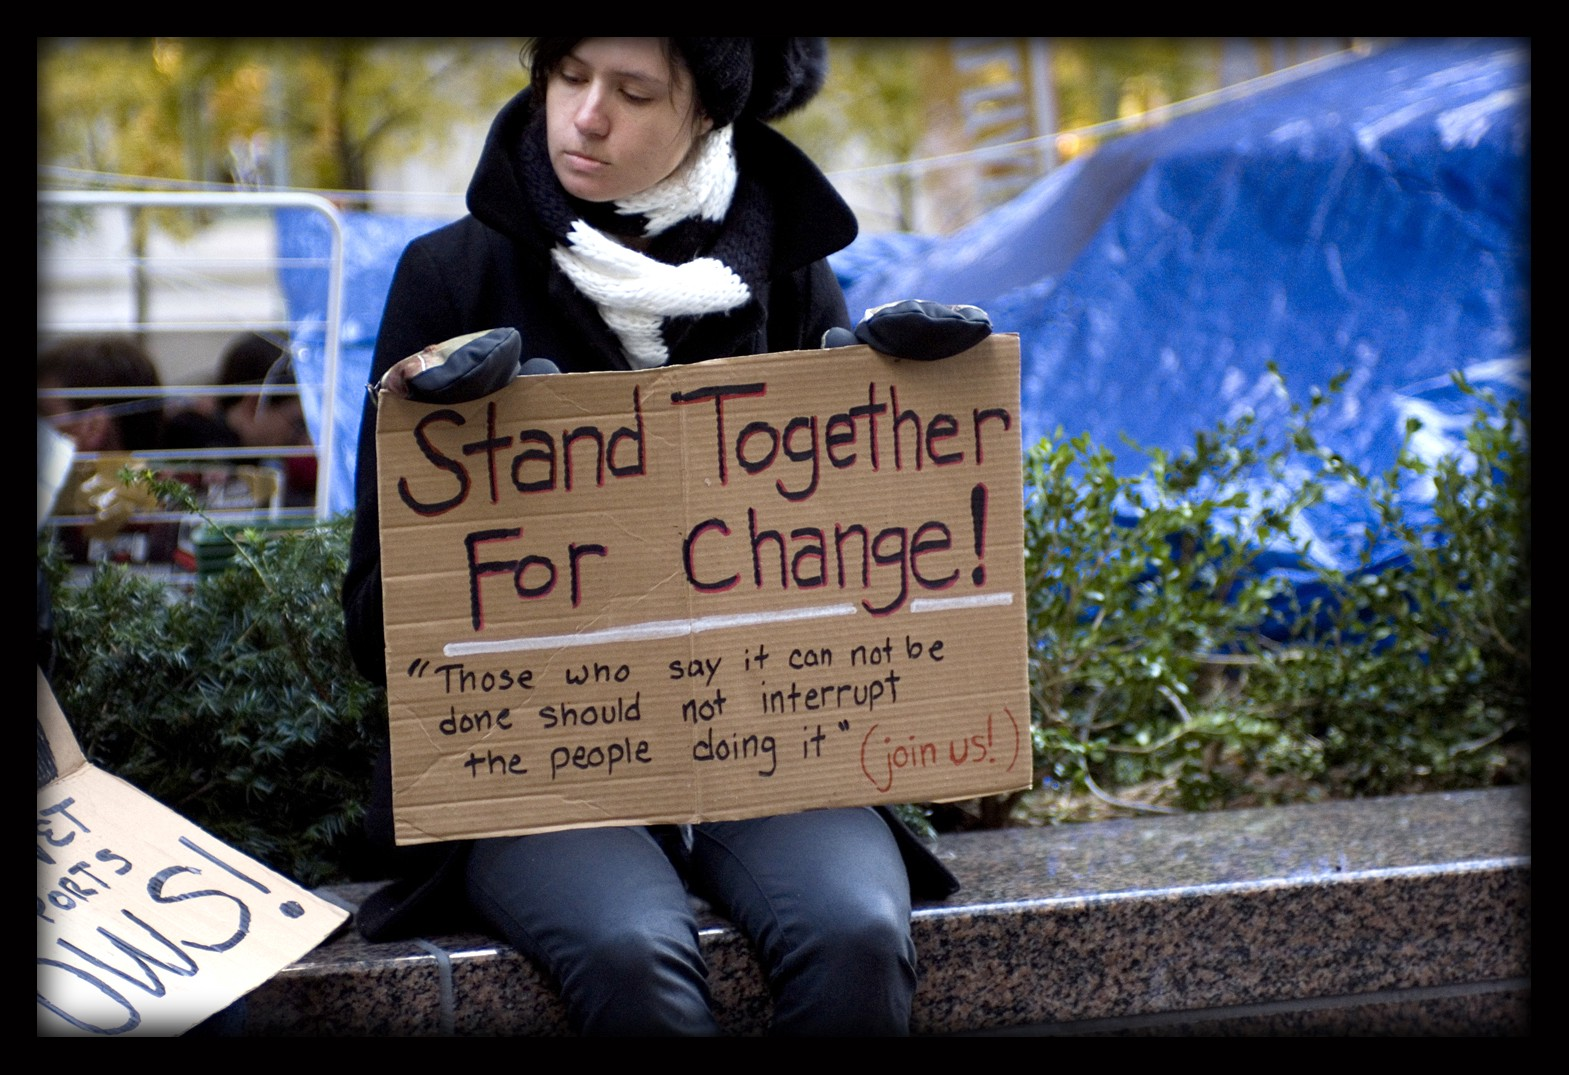 """A woman in jeans and a black coat and black and white scarf sitting on a concrete bench at Occupy Wall Street, with a blue tarp in the background. She is holding a sign that reads """"Stand together for change! Those say it can not be done should not interrupt the people doing it. Join us!"""""""